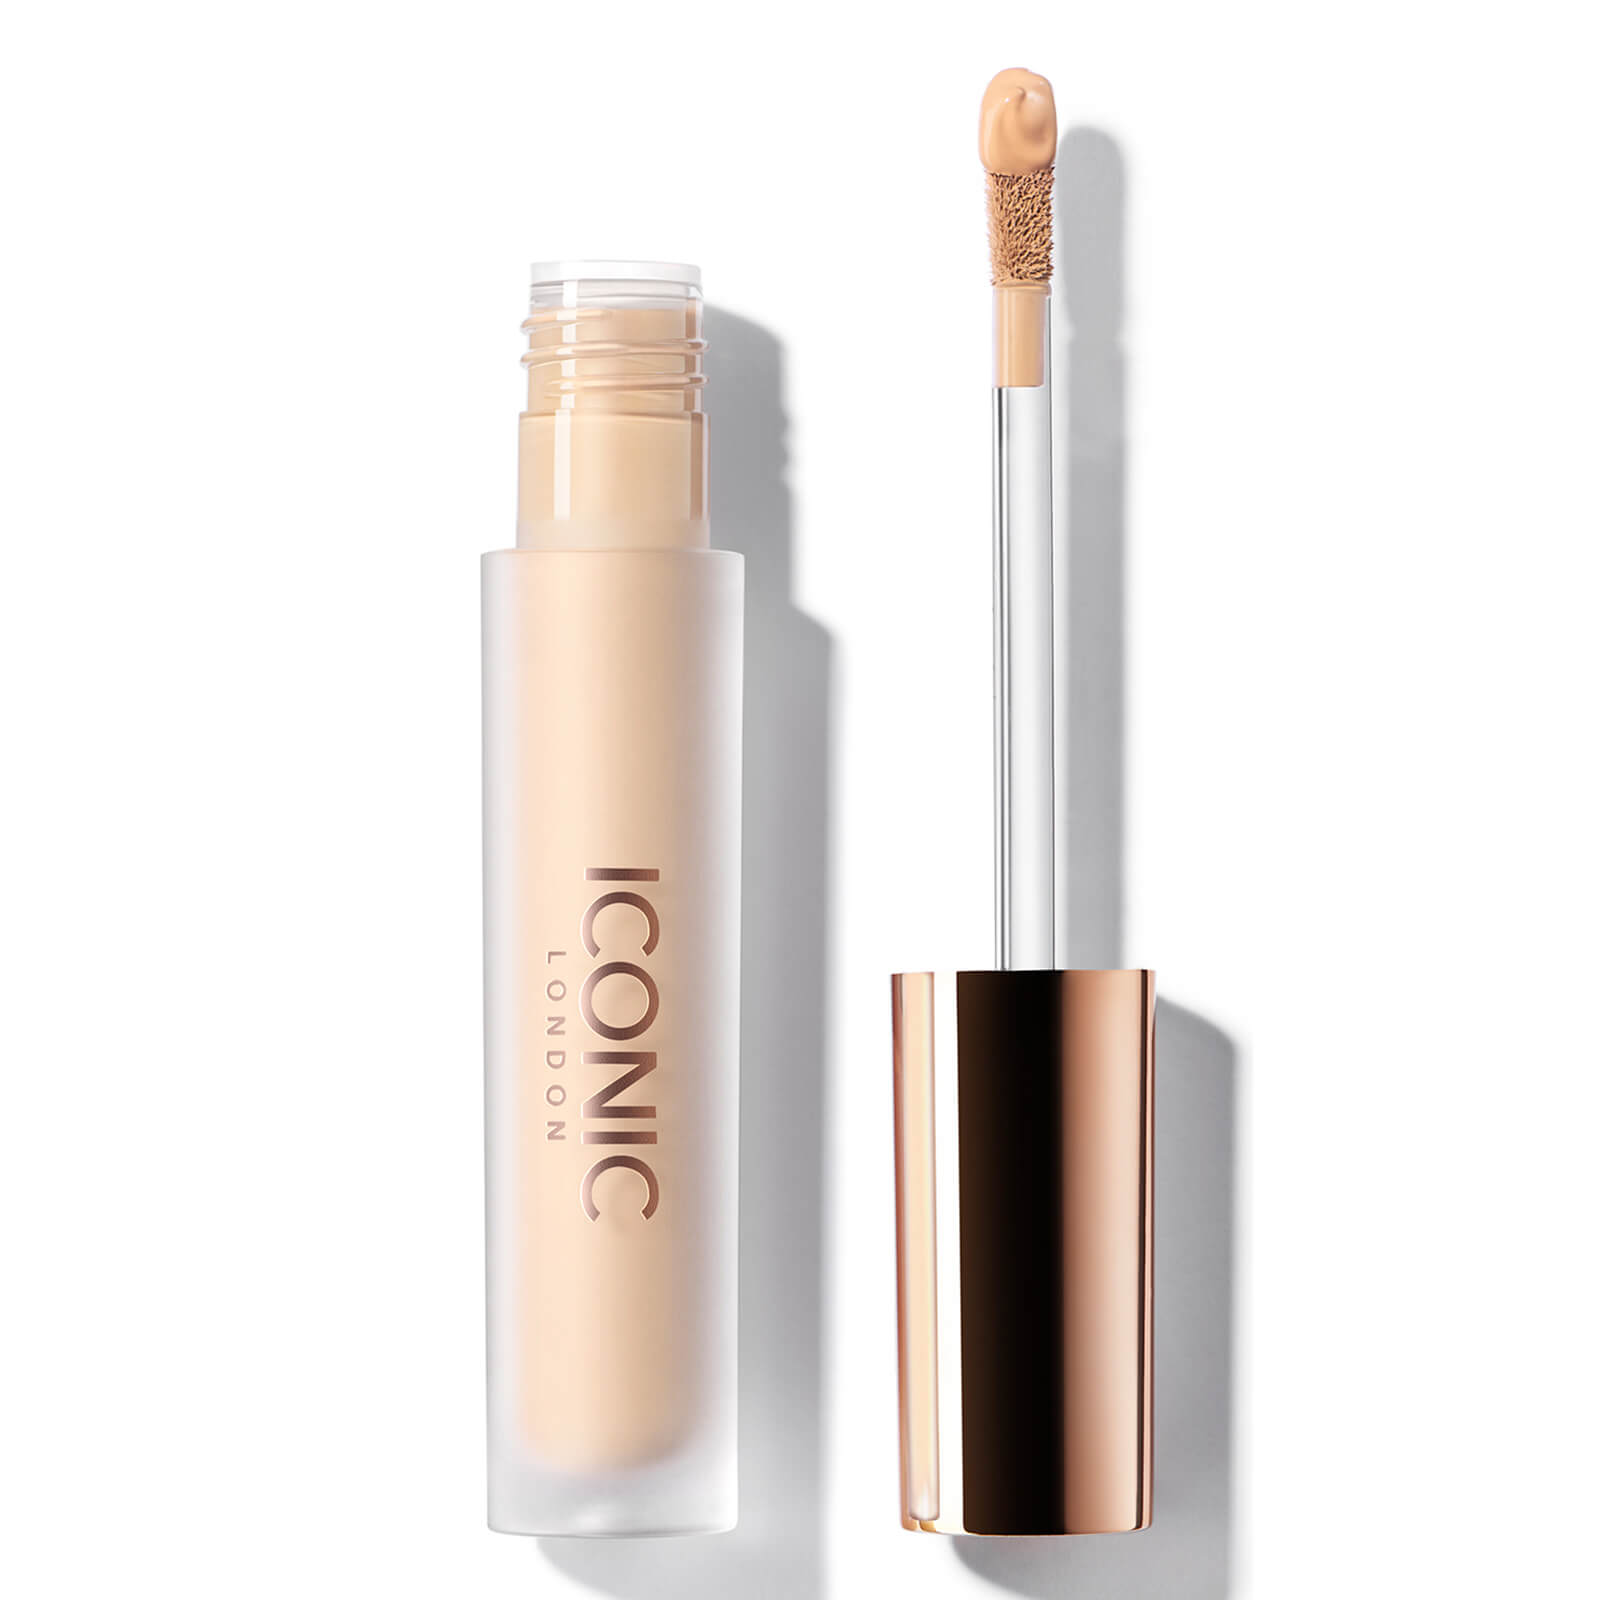 Image of ICONIC London Seamless Concealer 4.2ml (Various Shades) - Lightest Nude